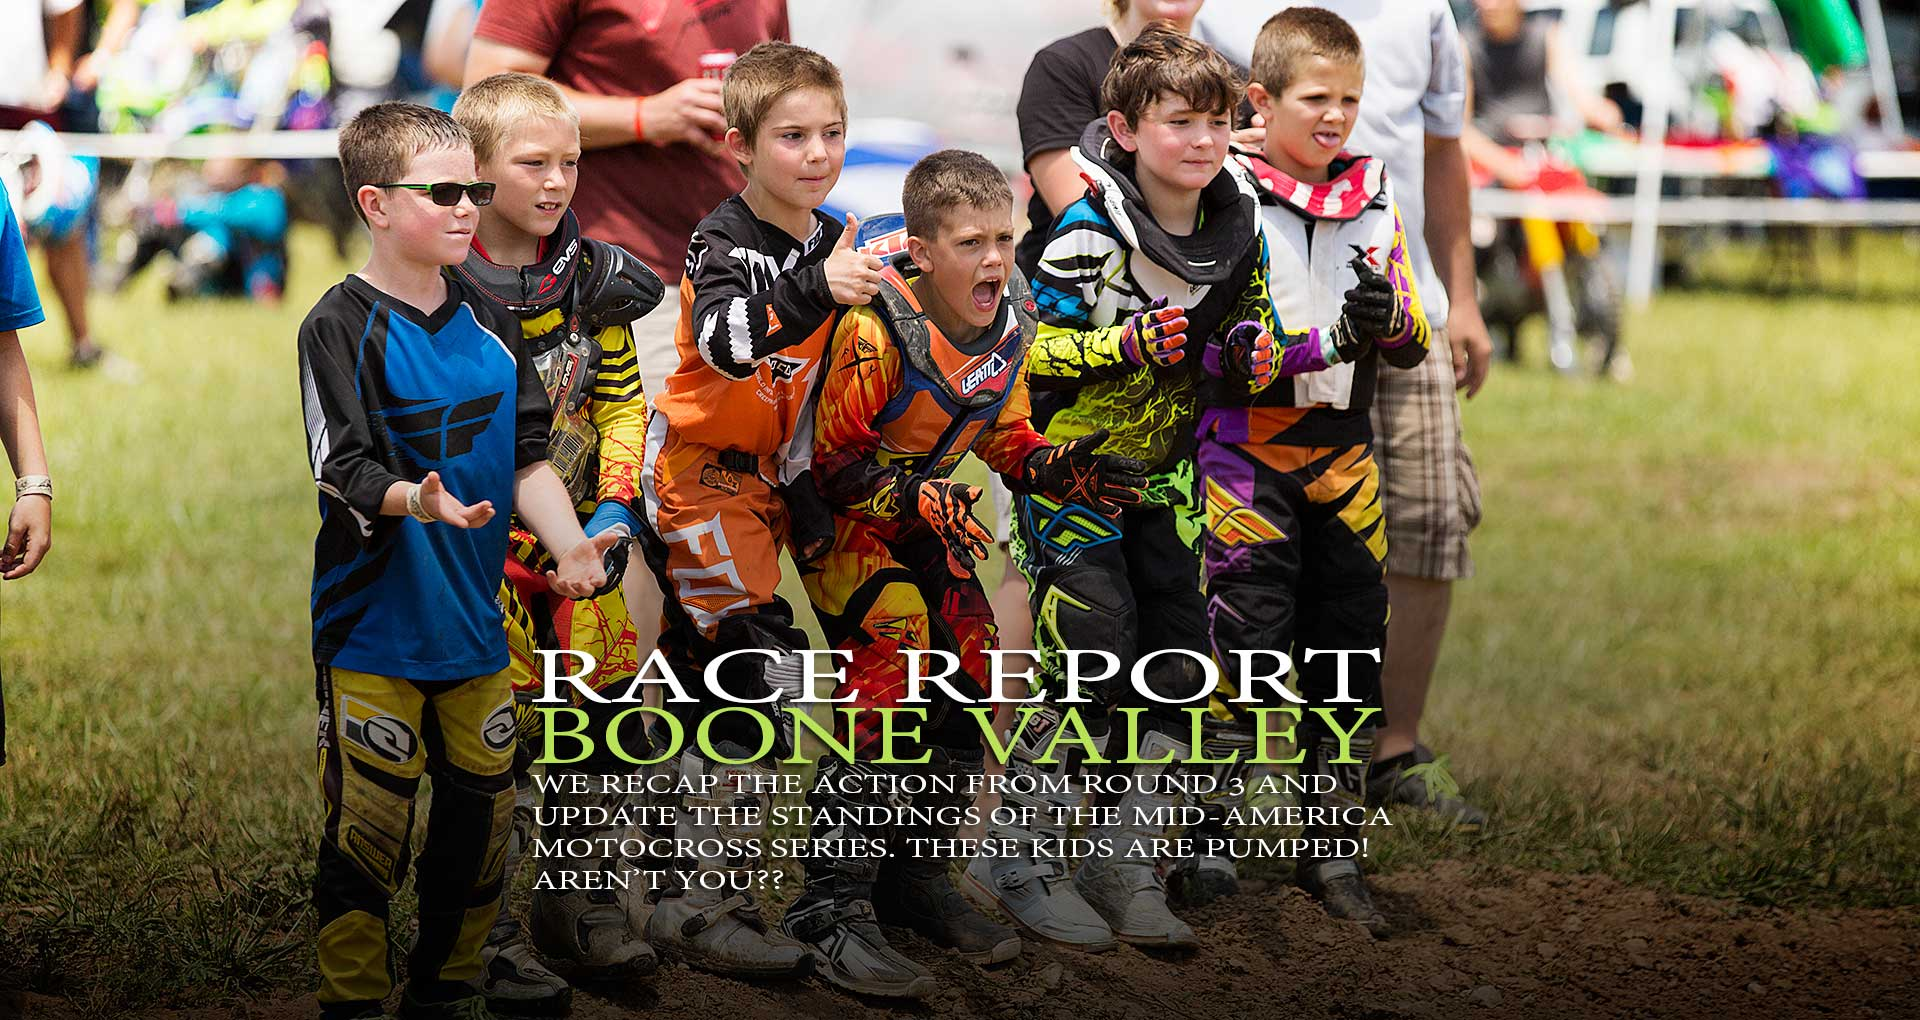 RACE REPORT: Boone Valley MX Mid-America Motocross Round 3